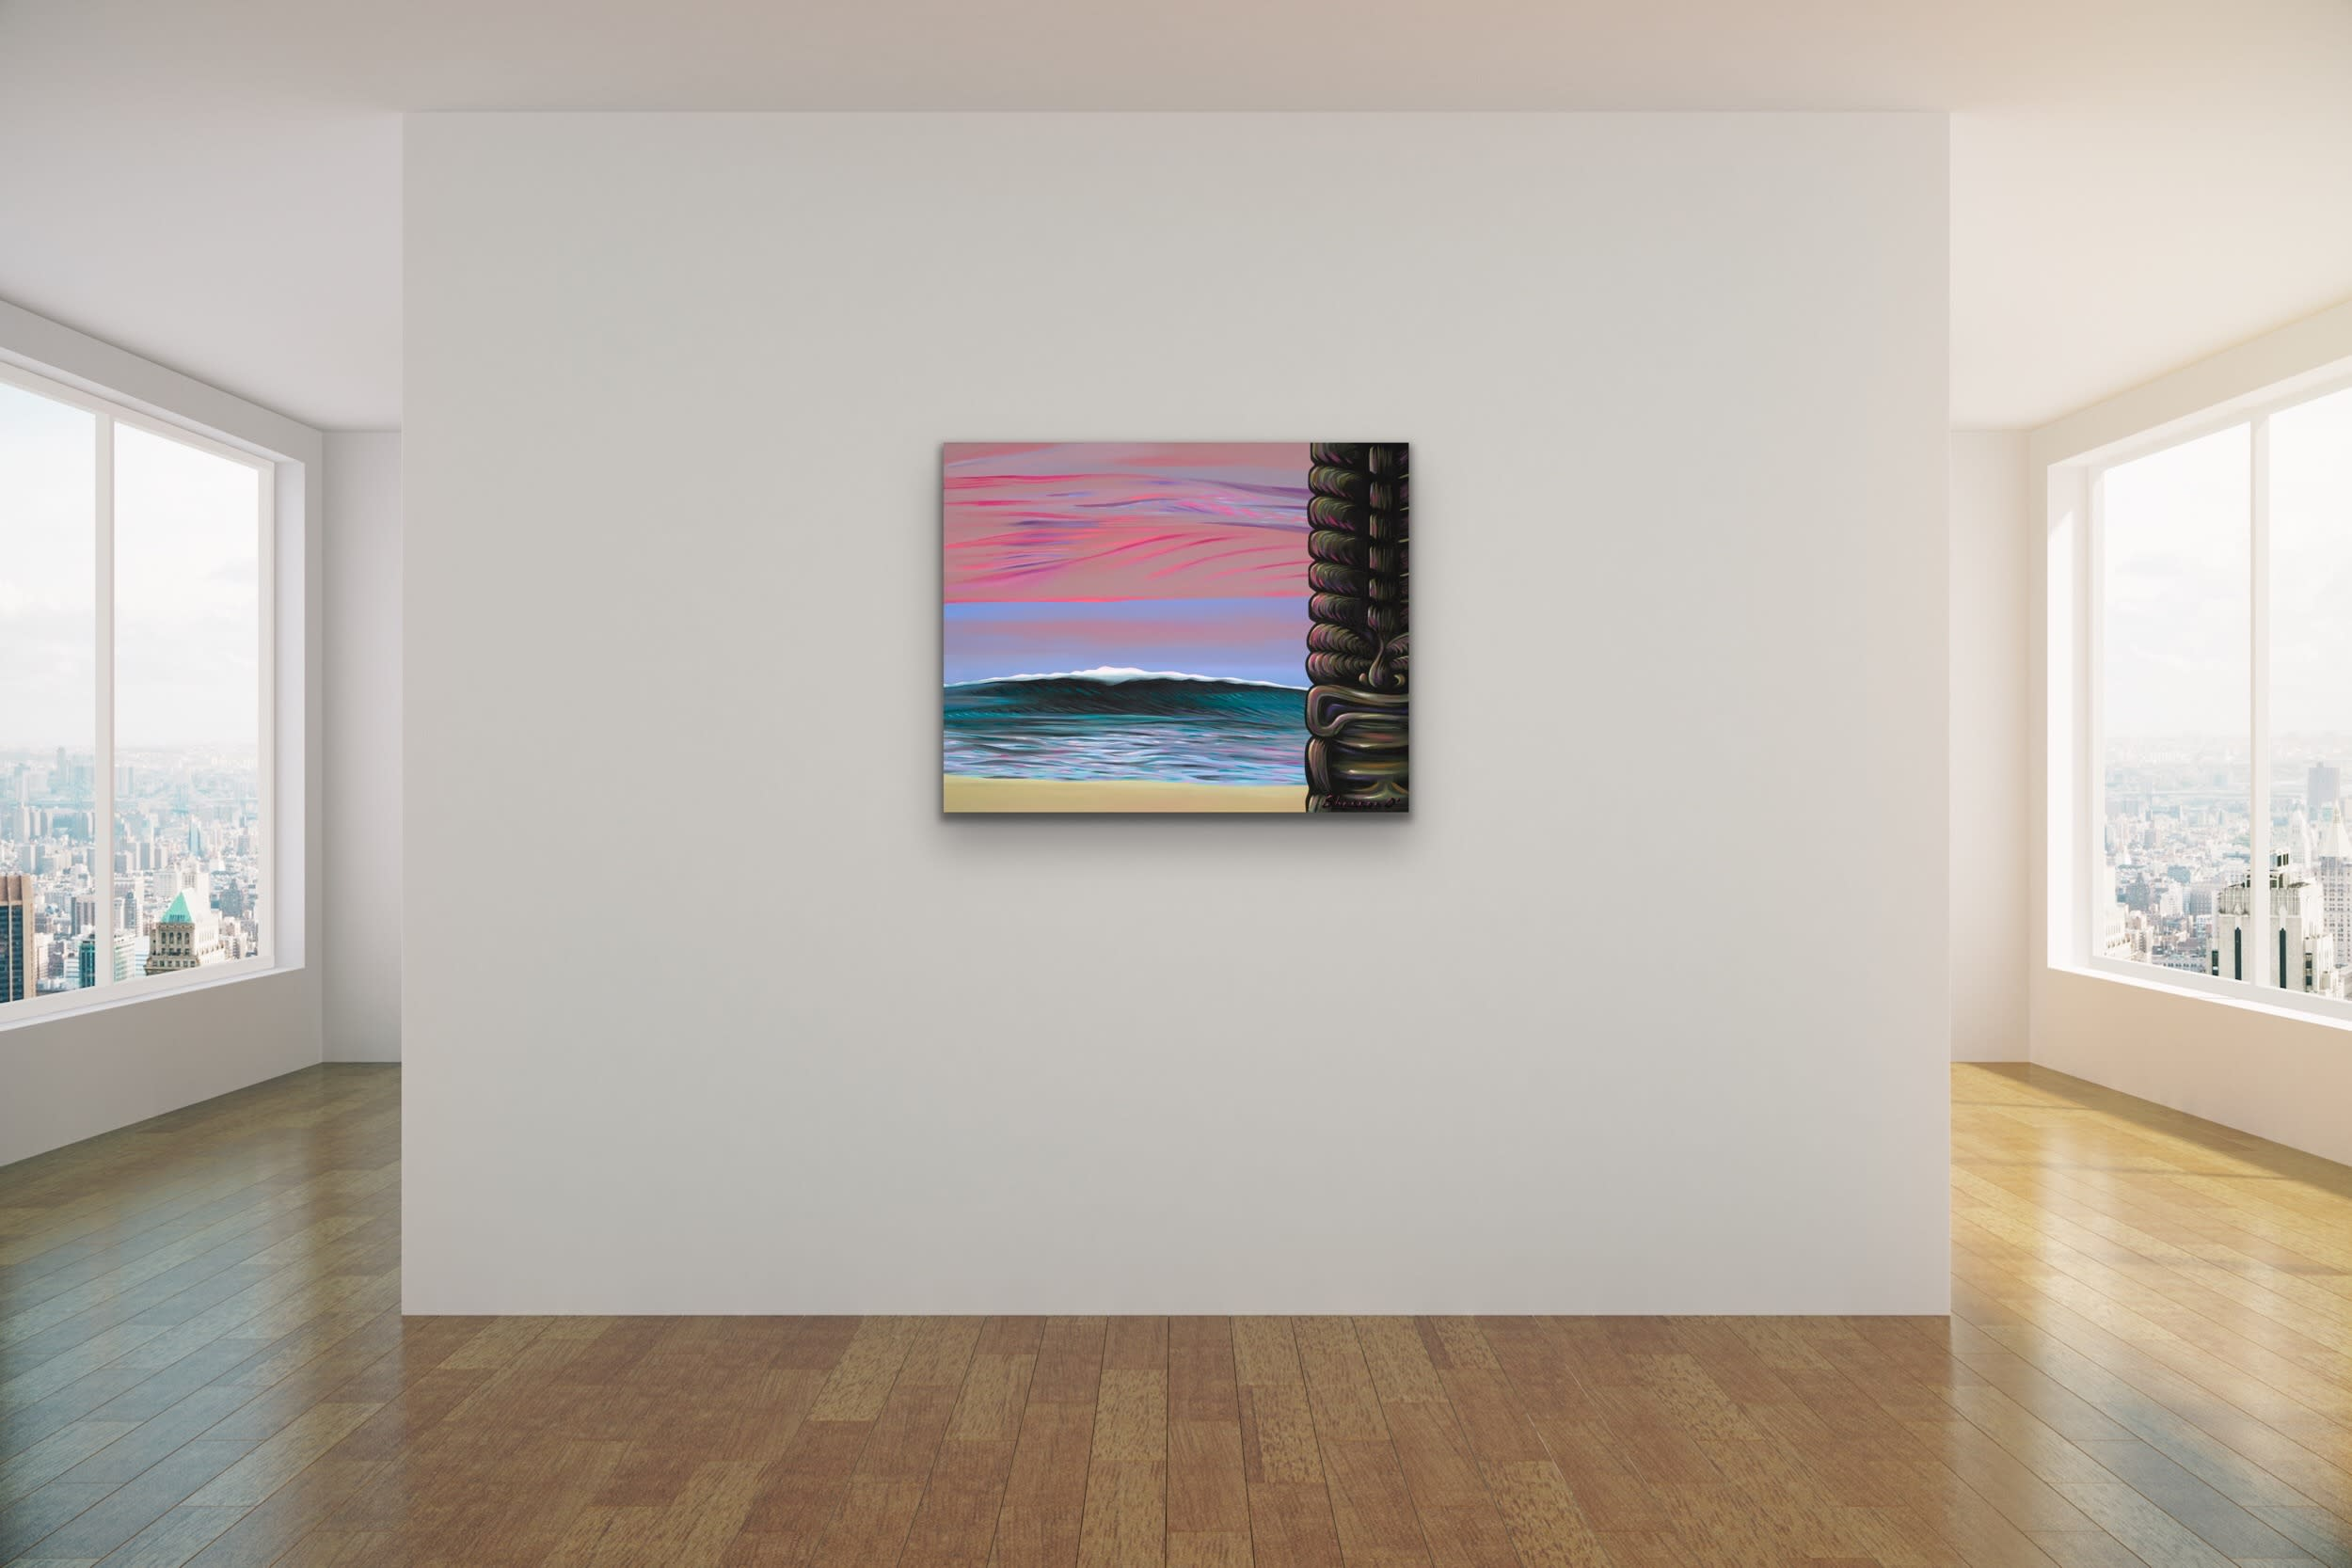 <div class='title'>           Shannon Oconnell Paintings Mock Ups Evo Art Maui Lahain Front Street Gallery Collect Popular Colorful Ocean Flowers Scenery Waves 23         </div>